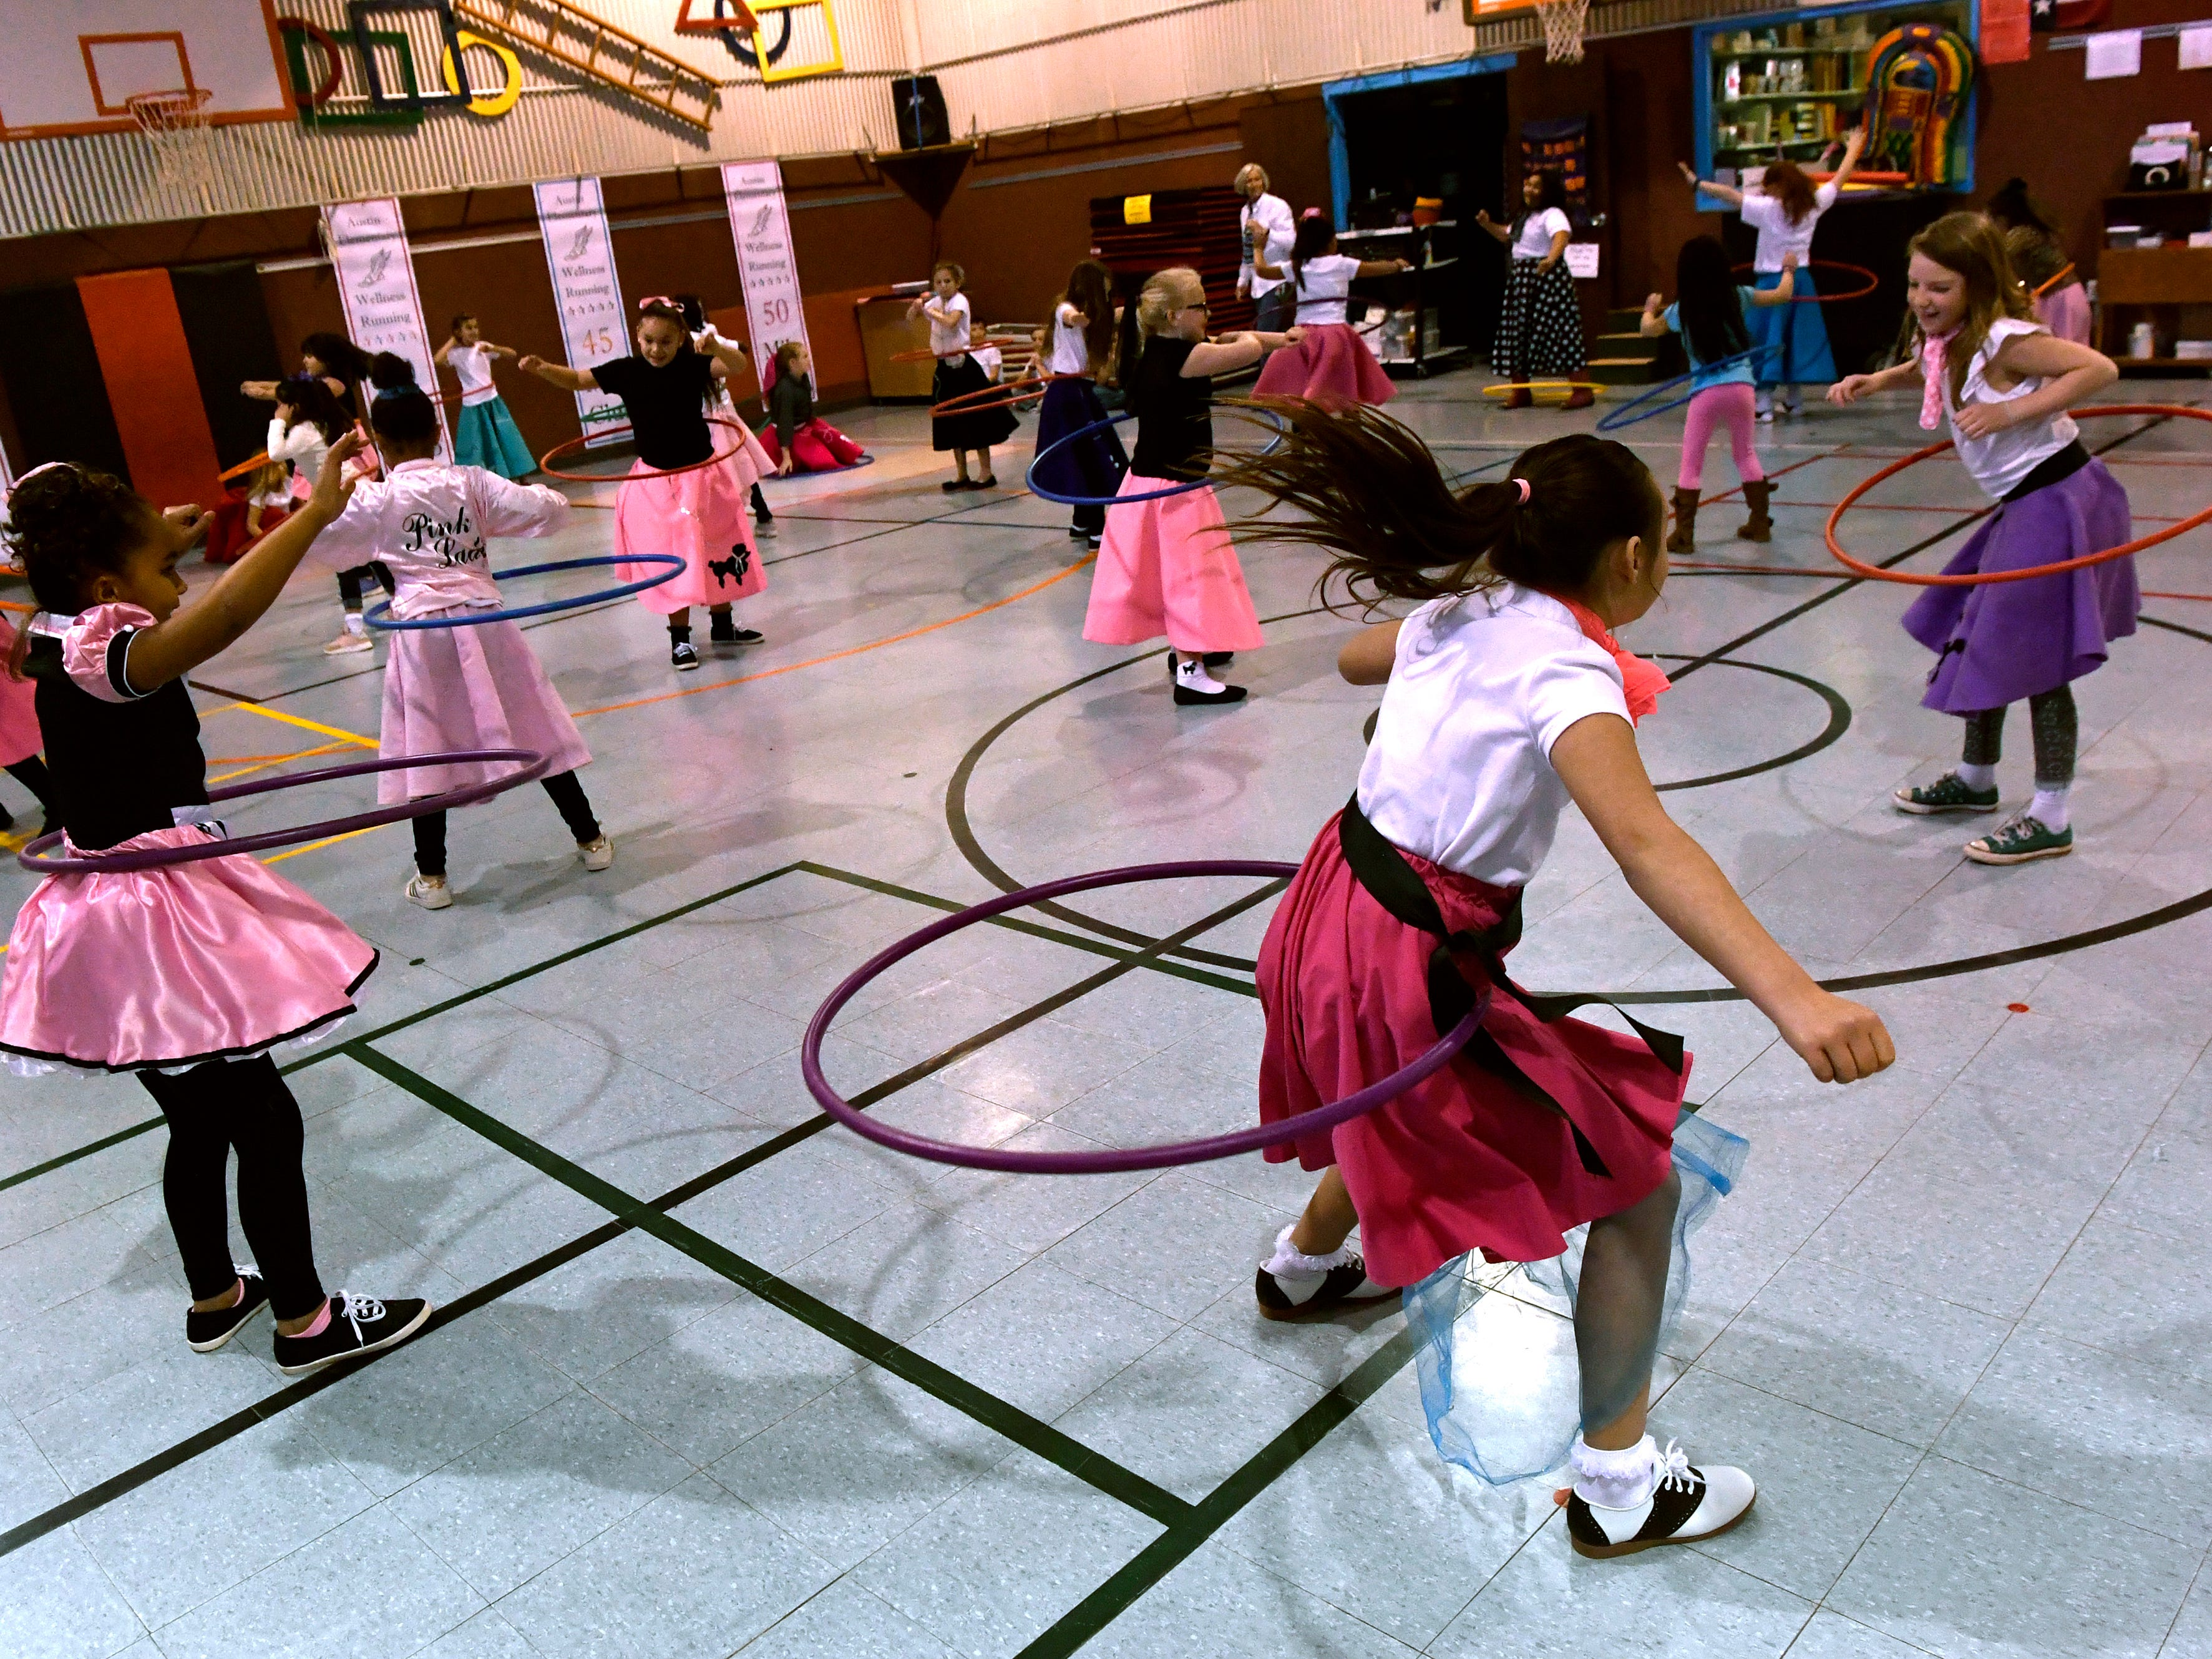 Third grade girls hula hoop in the Austin Elementary School gymnasium Jan. 25, 2019 as part of Fifties Day. Students from all grades also performed the Twist, the Stroll, and the Hand Jive for family and friends.